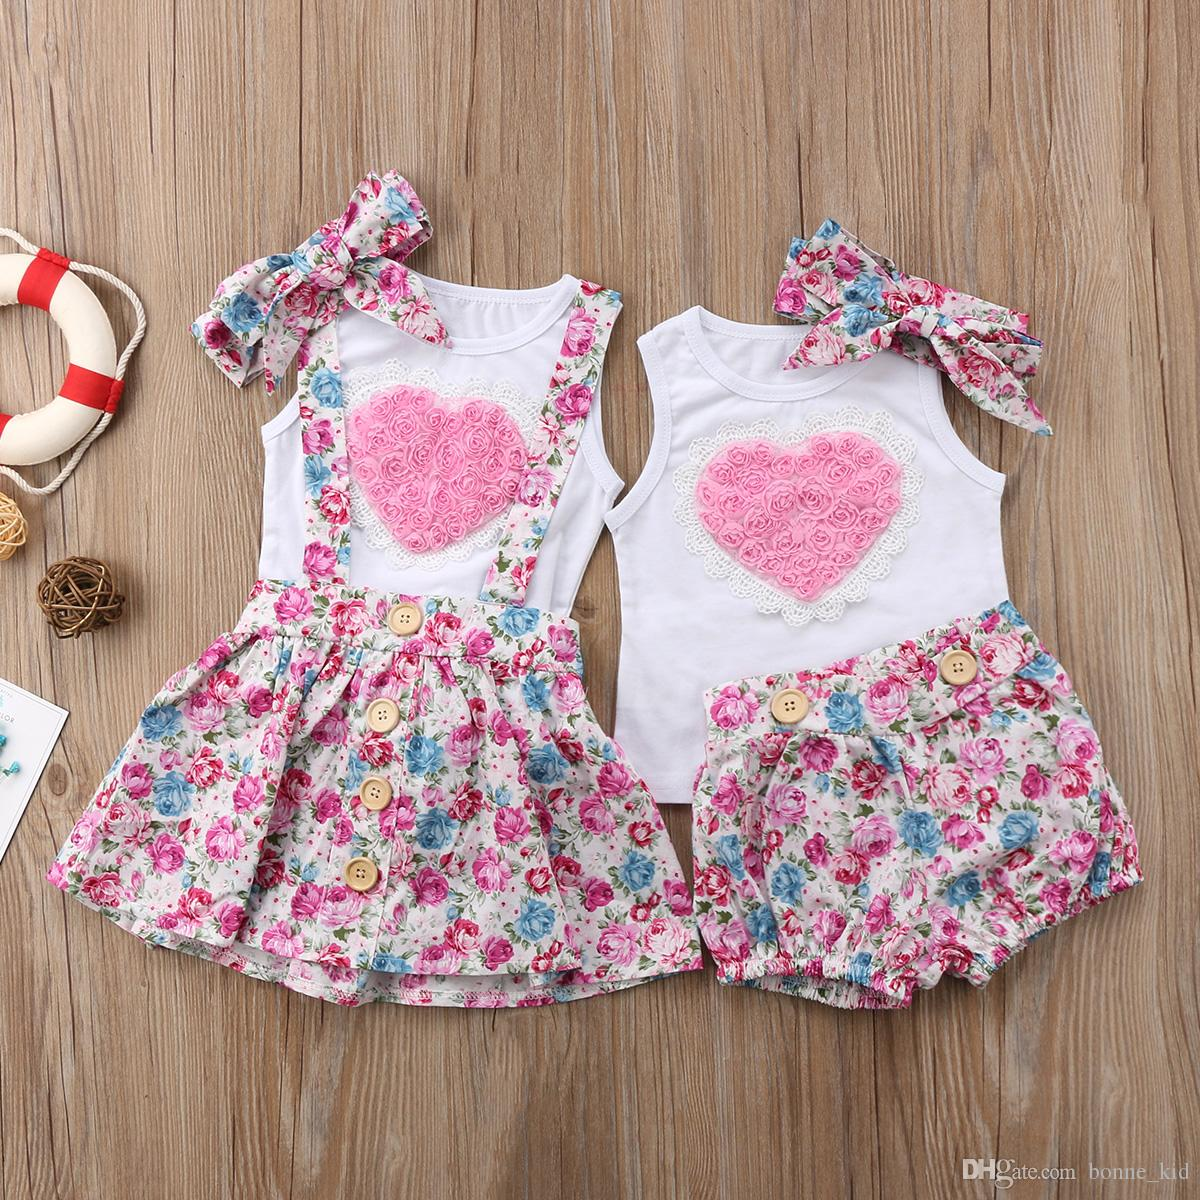 281fc6aabc71 2019 Floral Kids Baby Girls Sister Dress Outfits Clothes T Shirt Vest  Pants  Skirts Headband Set Pink Heart Family Matching Clothing Toddler From  Bonne kid